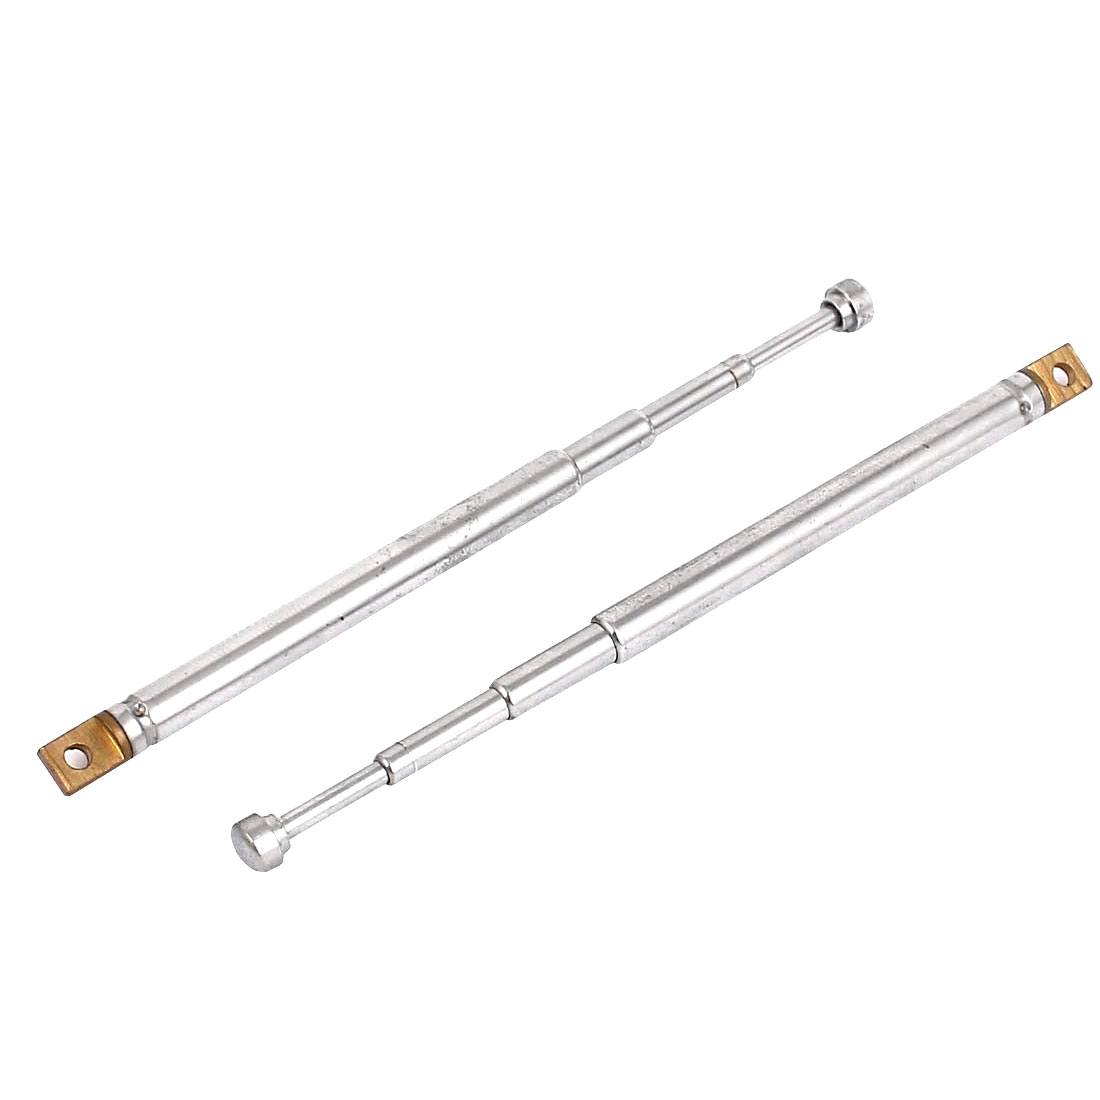 AM FM Radio TV 4 Sections Telescoping Antenna Aerial 145mm Long 2PCS